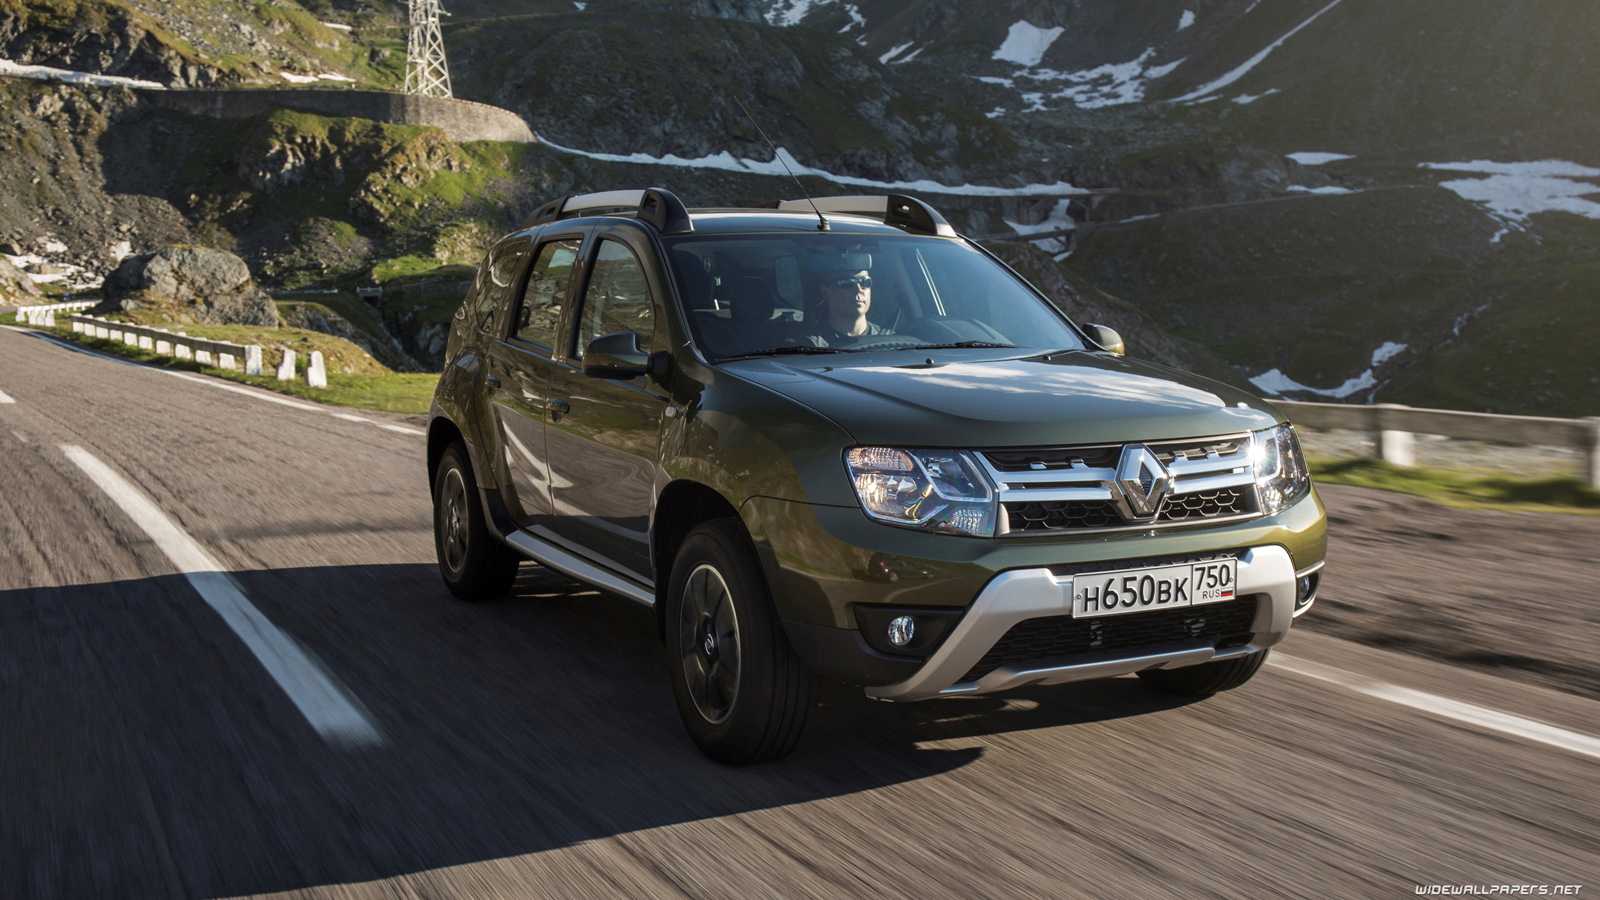 Renault duster cars desktop wallpapers hd and wide wallpapers renault duster cars wallpapers voltagebd Image collections